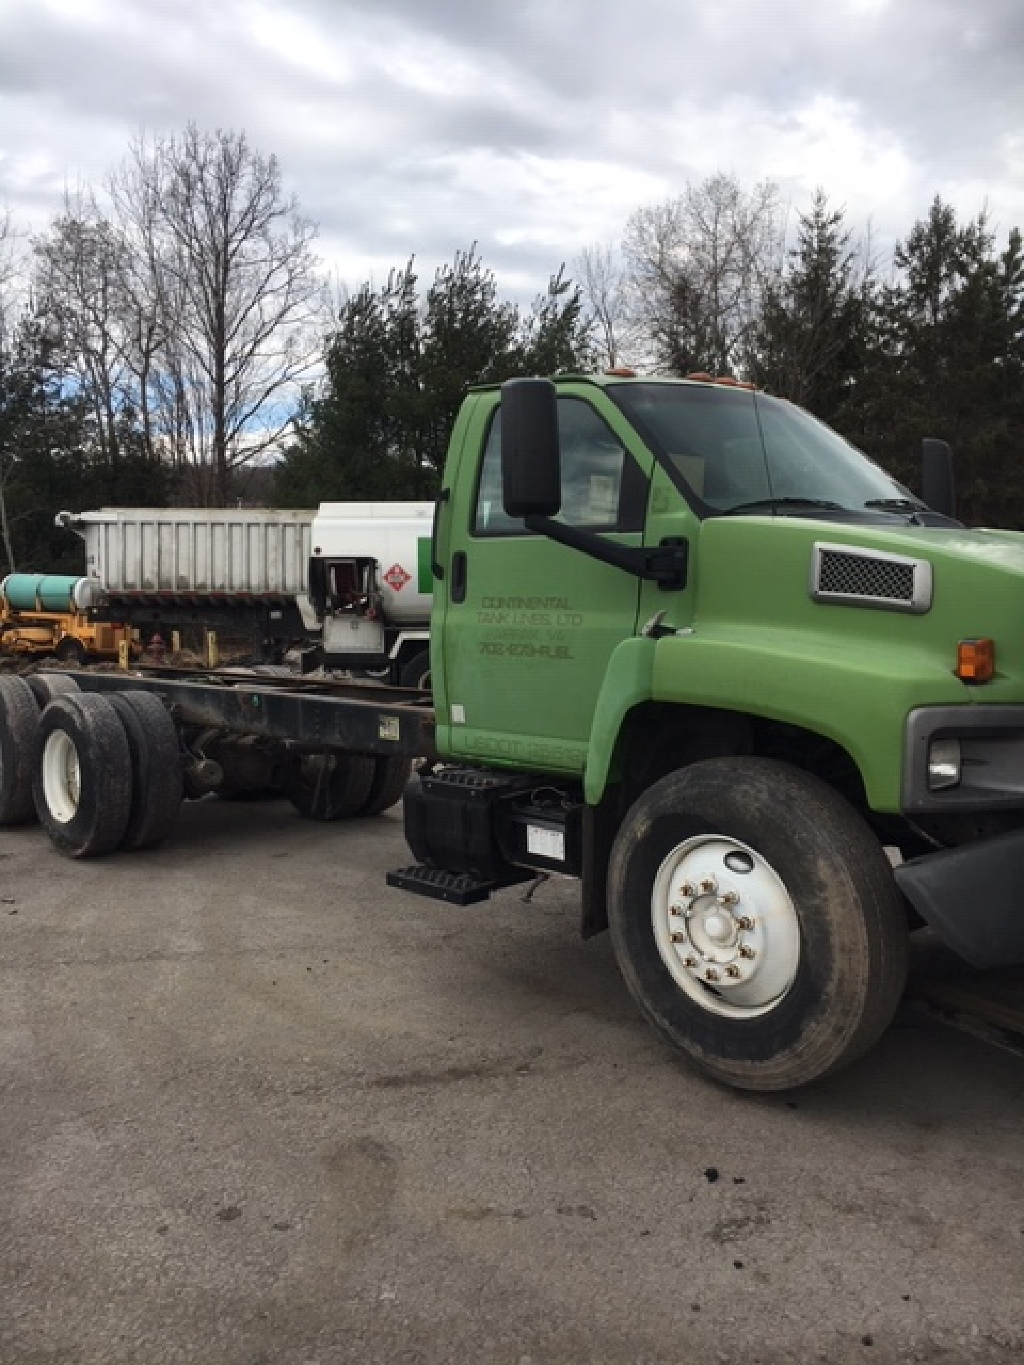 USED 2003 GMC 8500 CAB CHASSIS TRUCK #2441